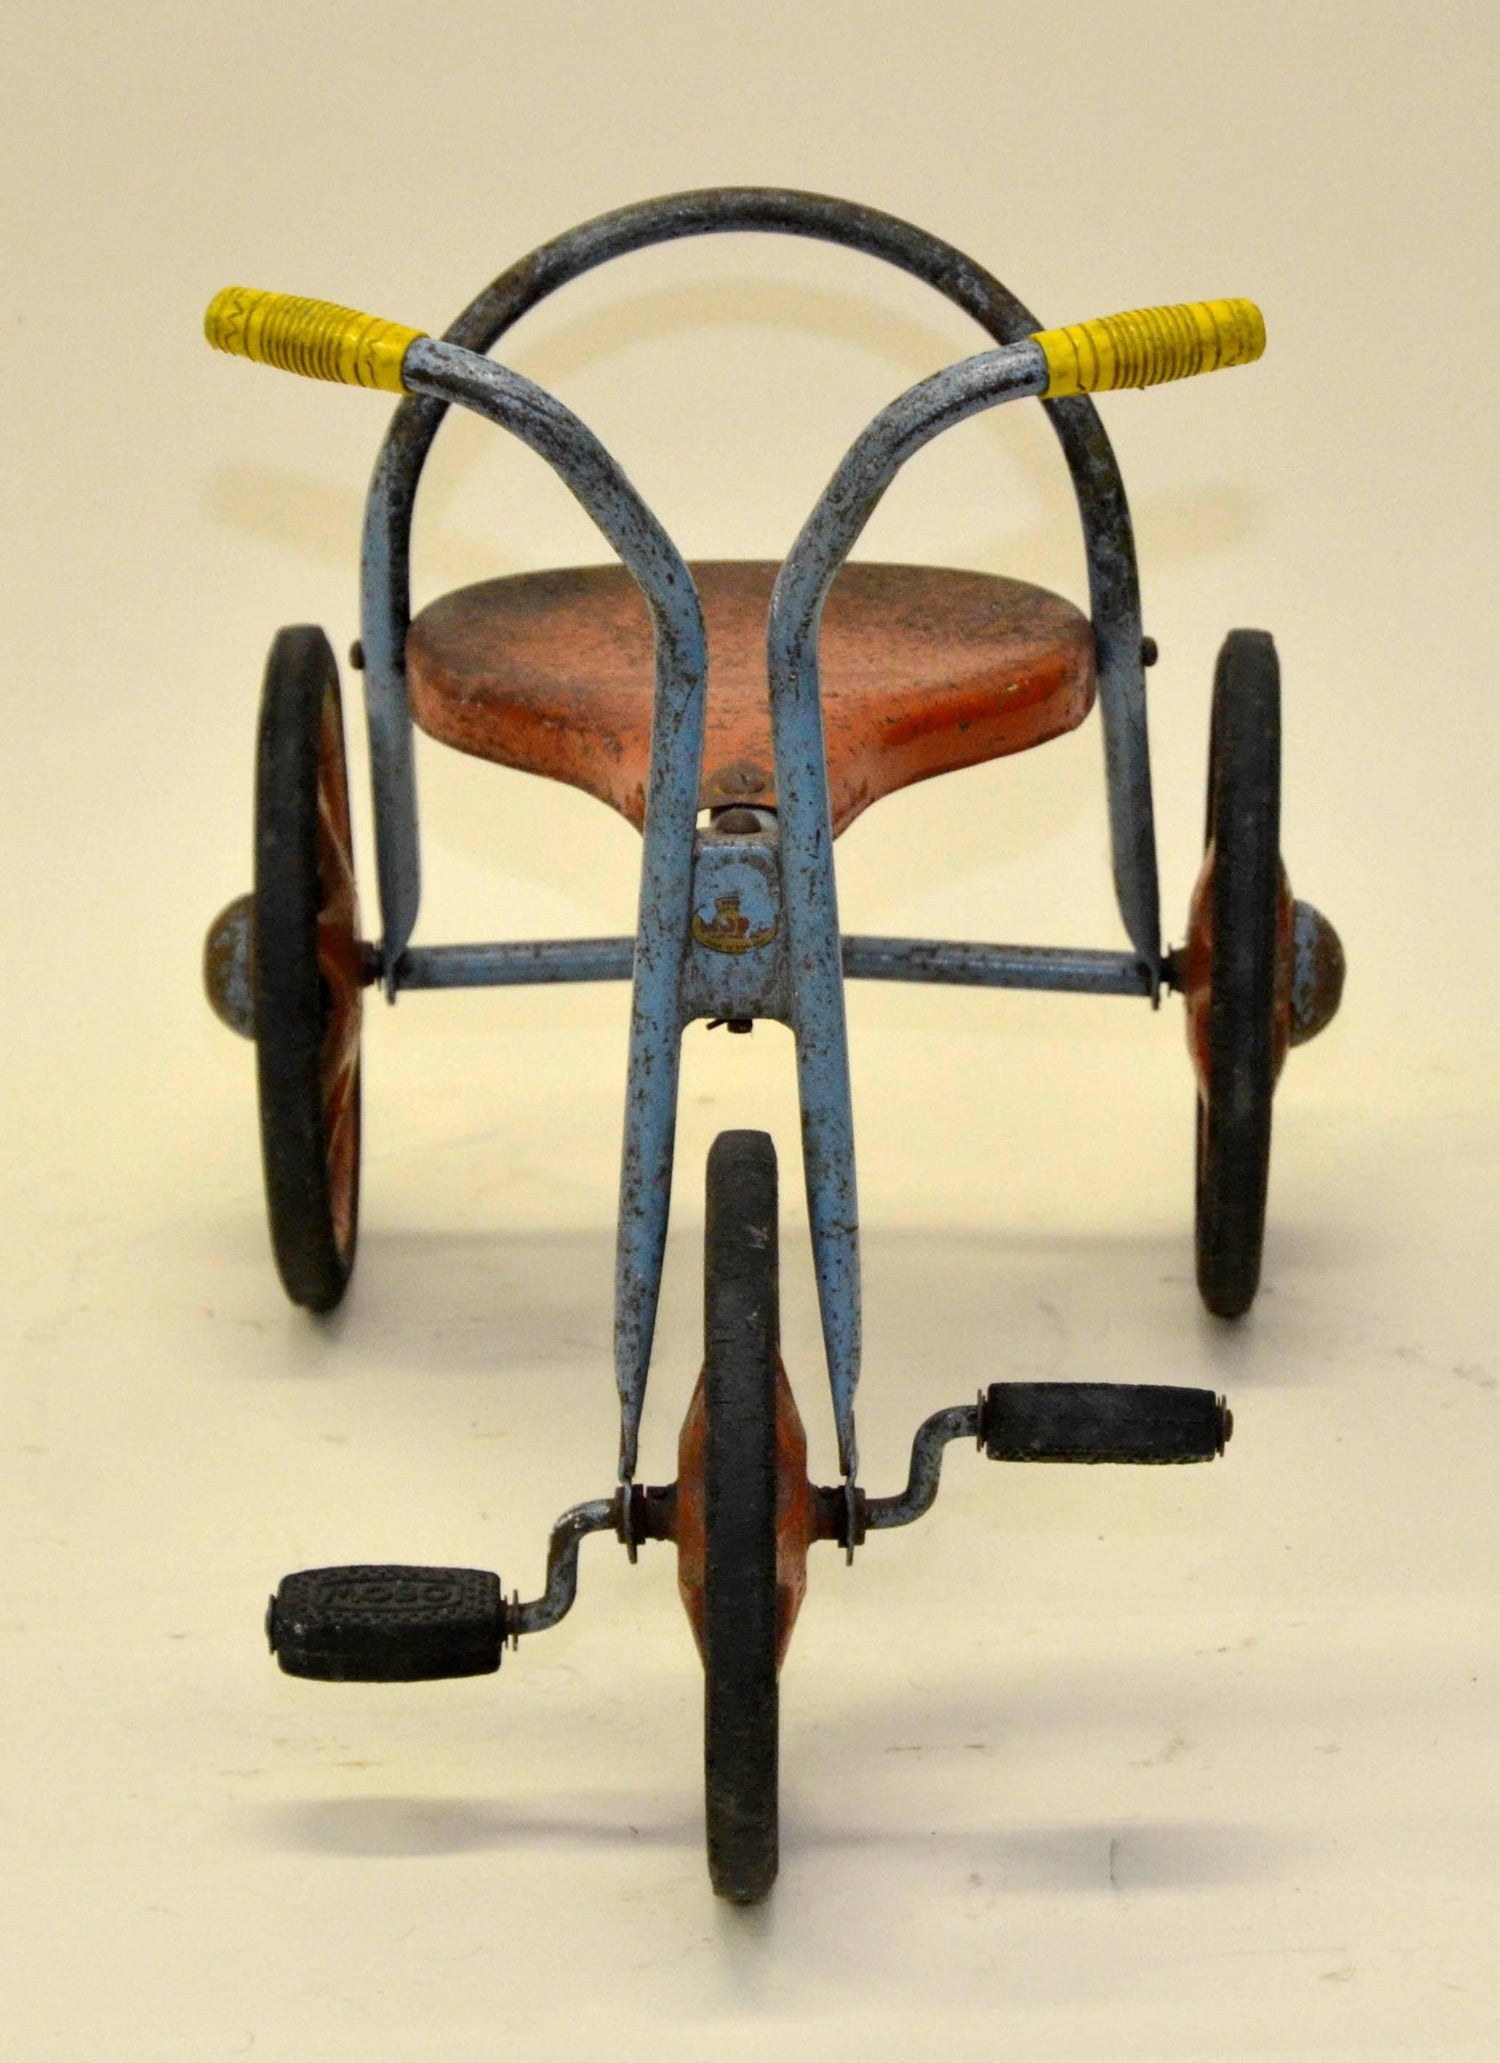 1d9a3254516 1960s Mobo Vintage Toddler's Three Wheeled Tricycle For Sale at 1stdibs